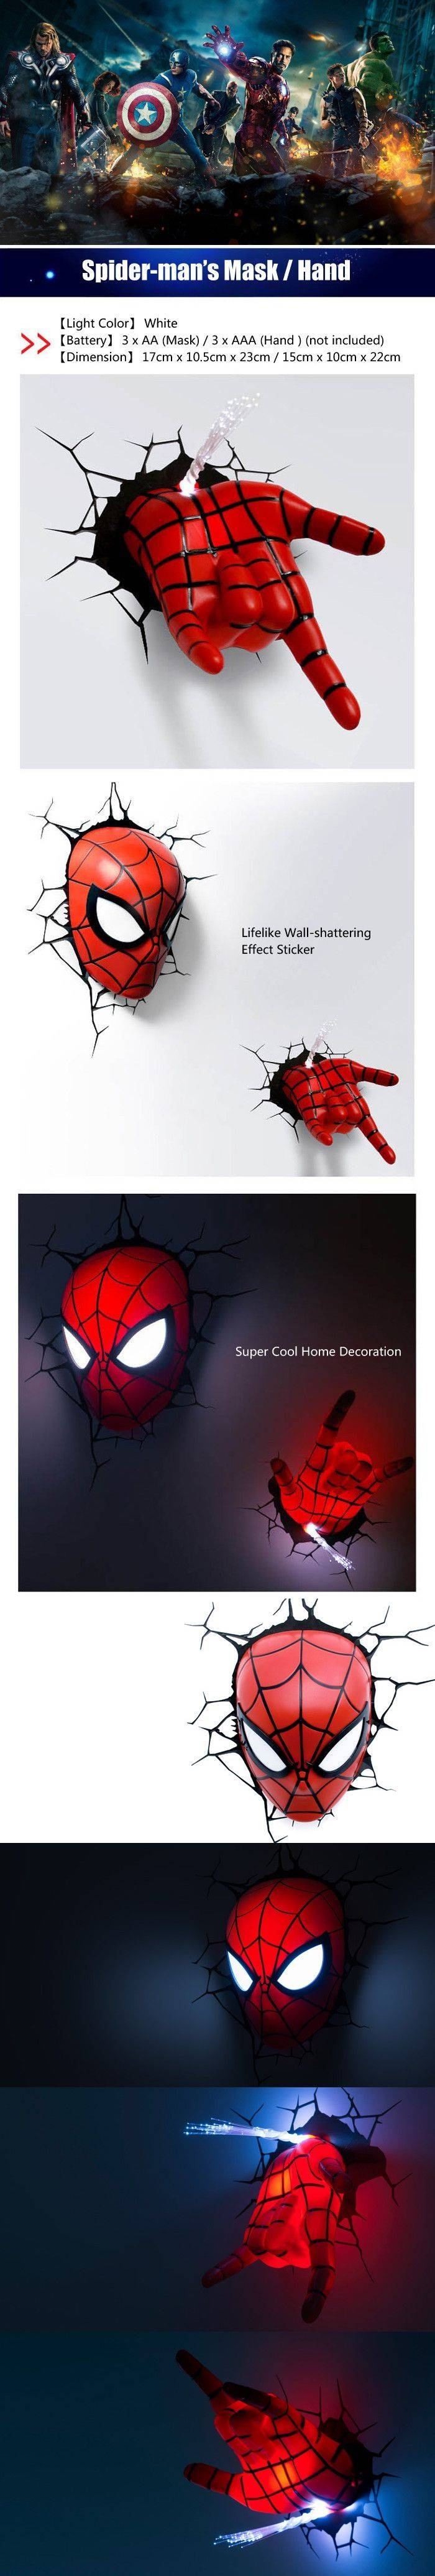 Best 25+ Avengers Wall Lights Ideas On Pinterest | Avengers Boys Inside Most Recent 3D Wall Art Night Light Spiderman Hand (View 8 of 20)